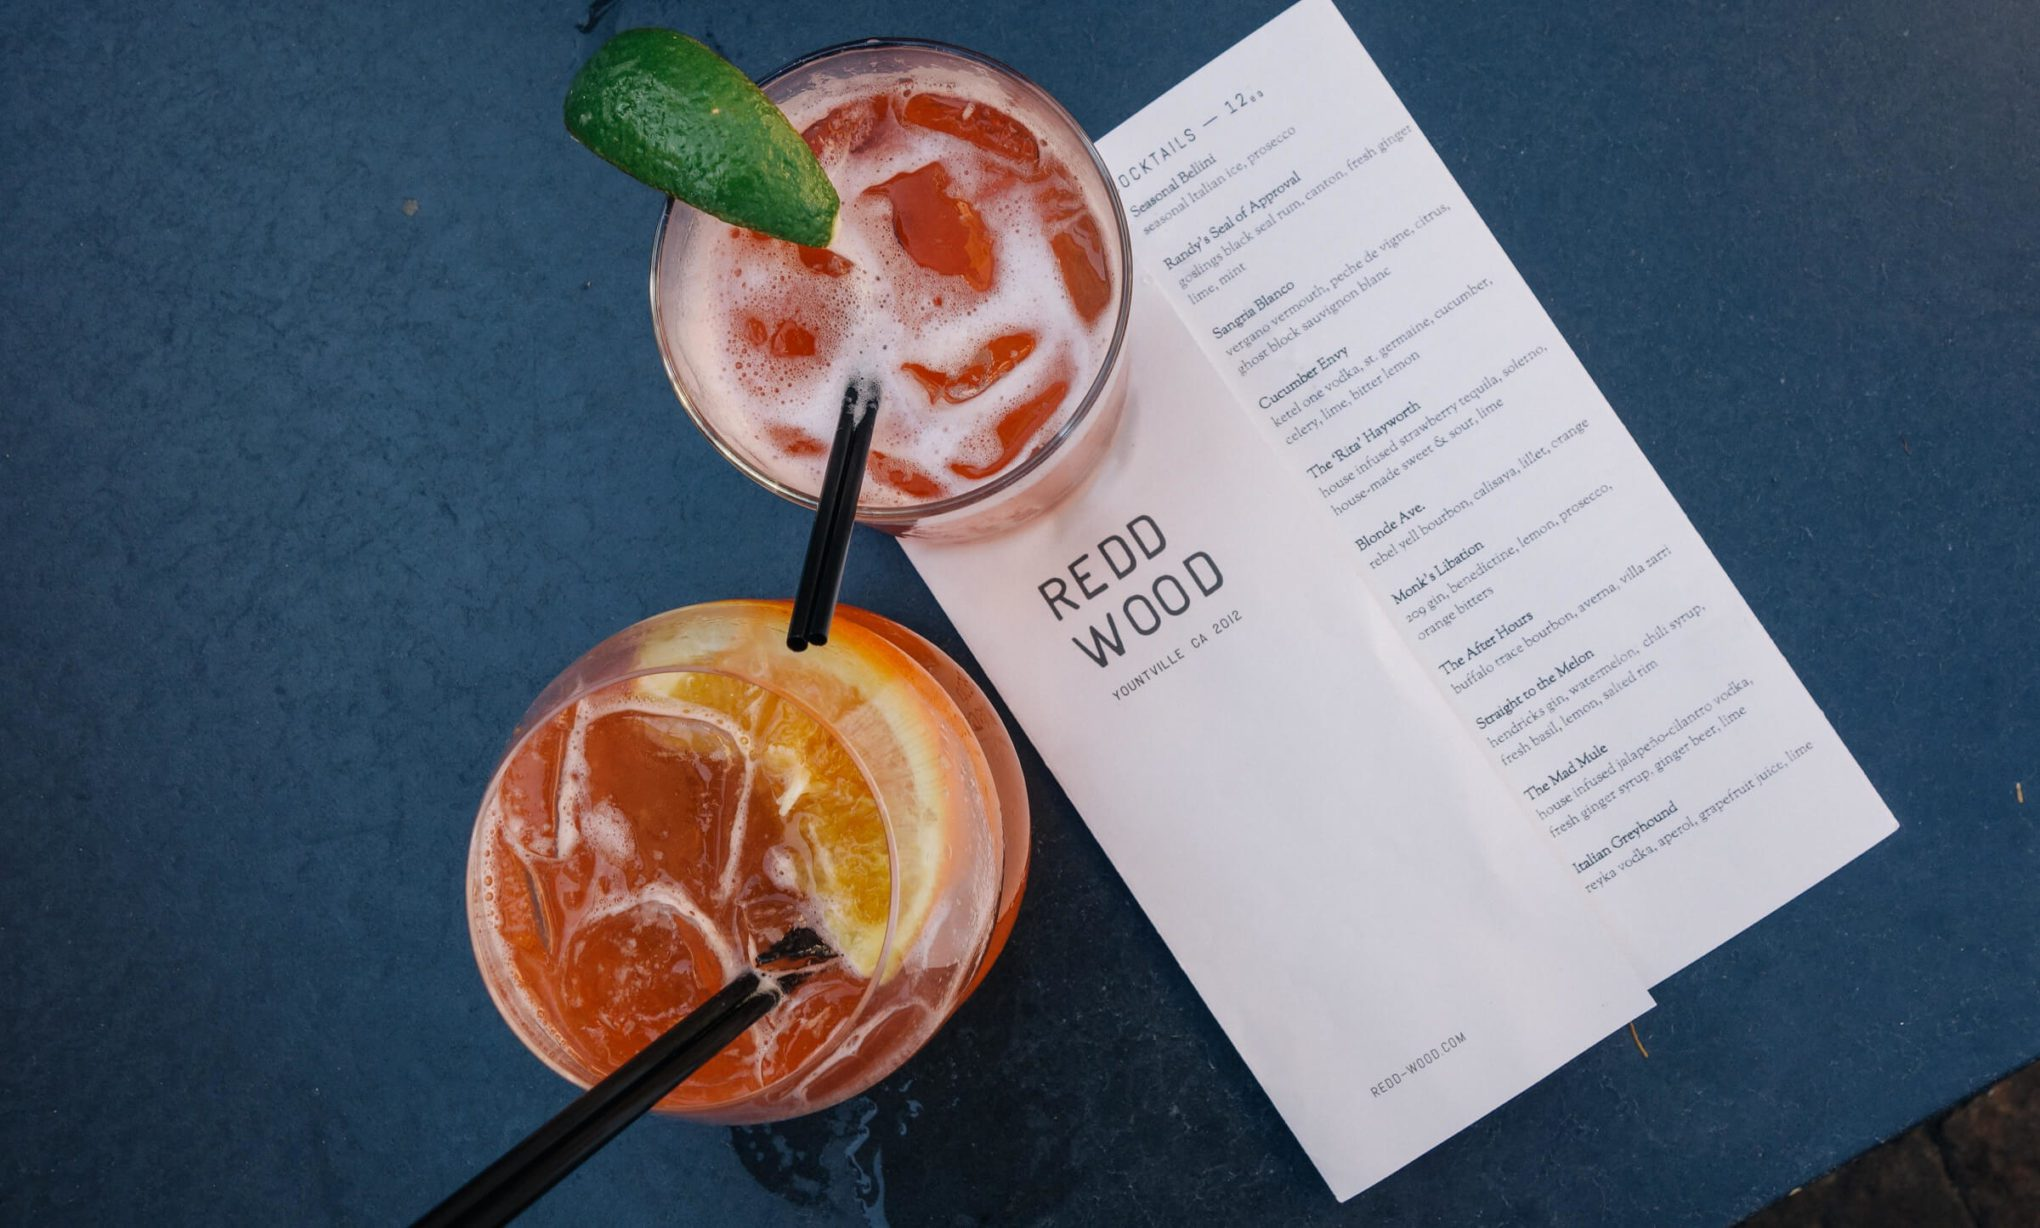 Redd Wood Cocktails in Yountville Napa with The Taste Edit